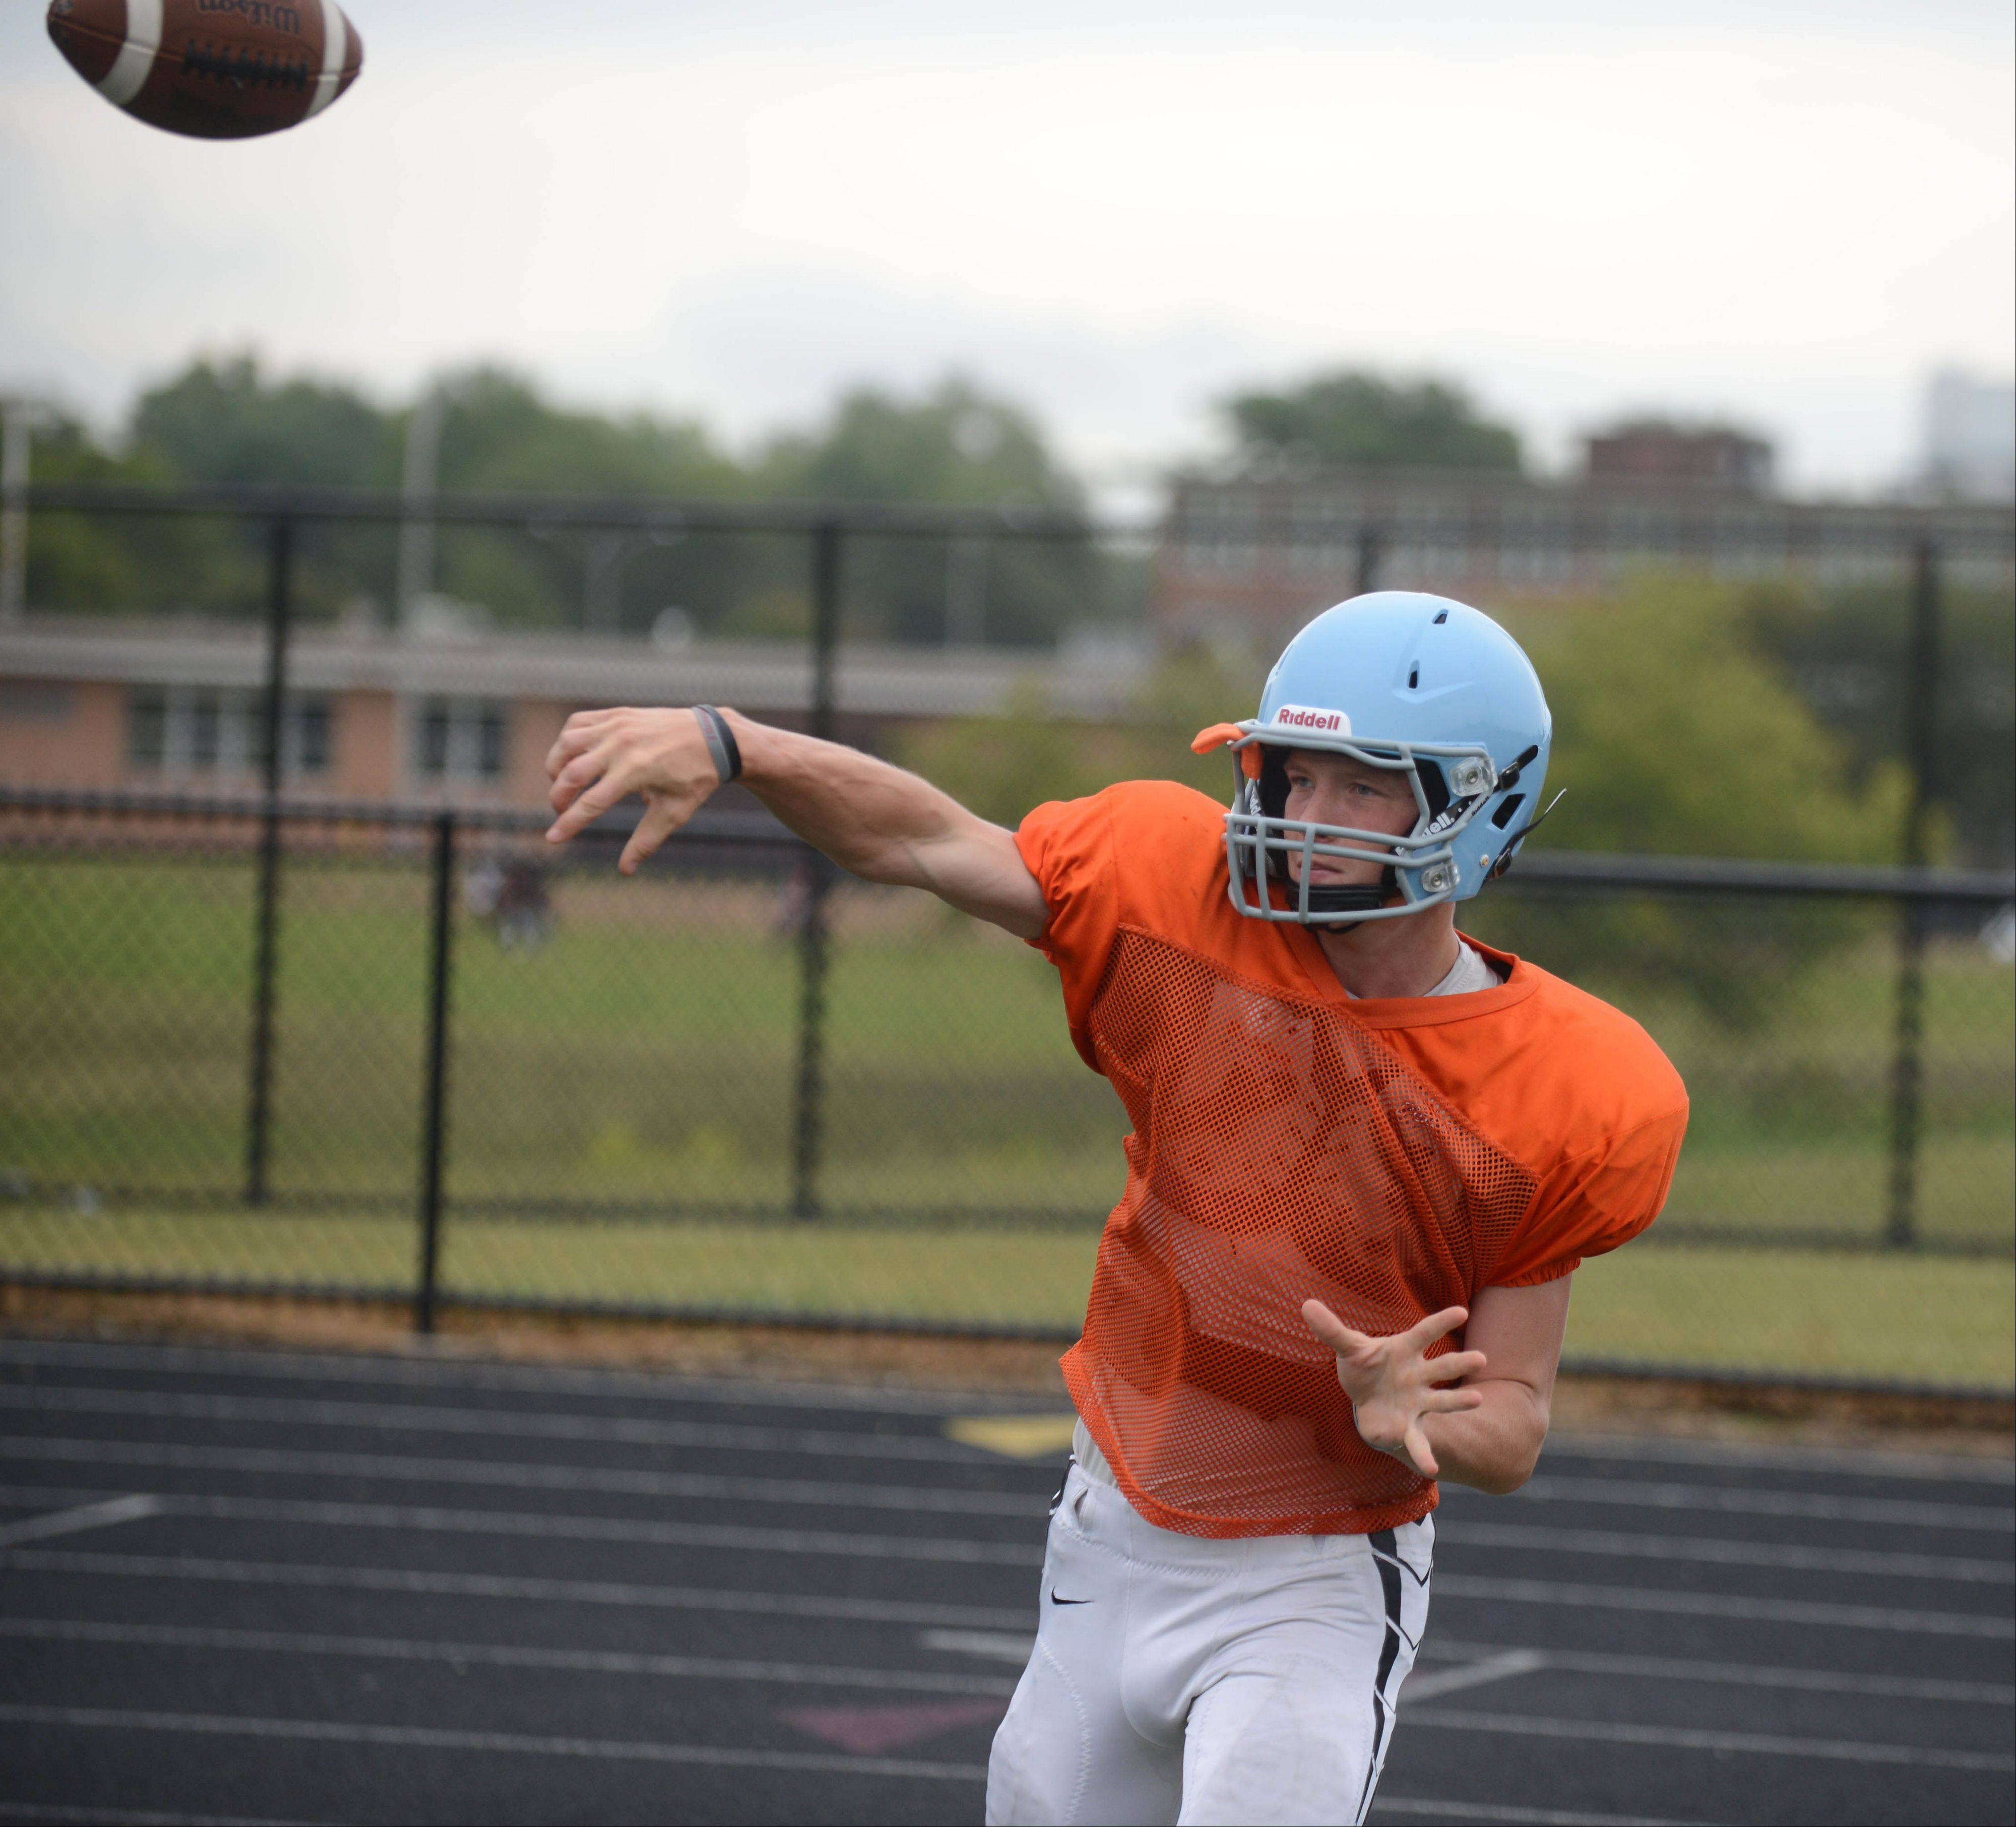 Paul Michna/pmichna@dailyherald.com ¬ Quater Back Brian Johnson took part in Thursdays practice at Willowbrook High School.